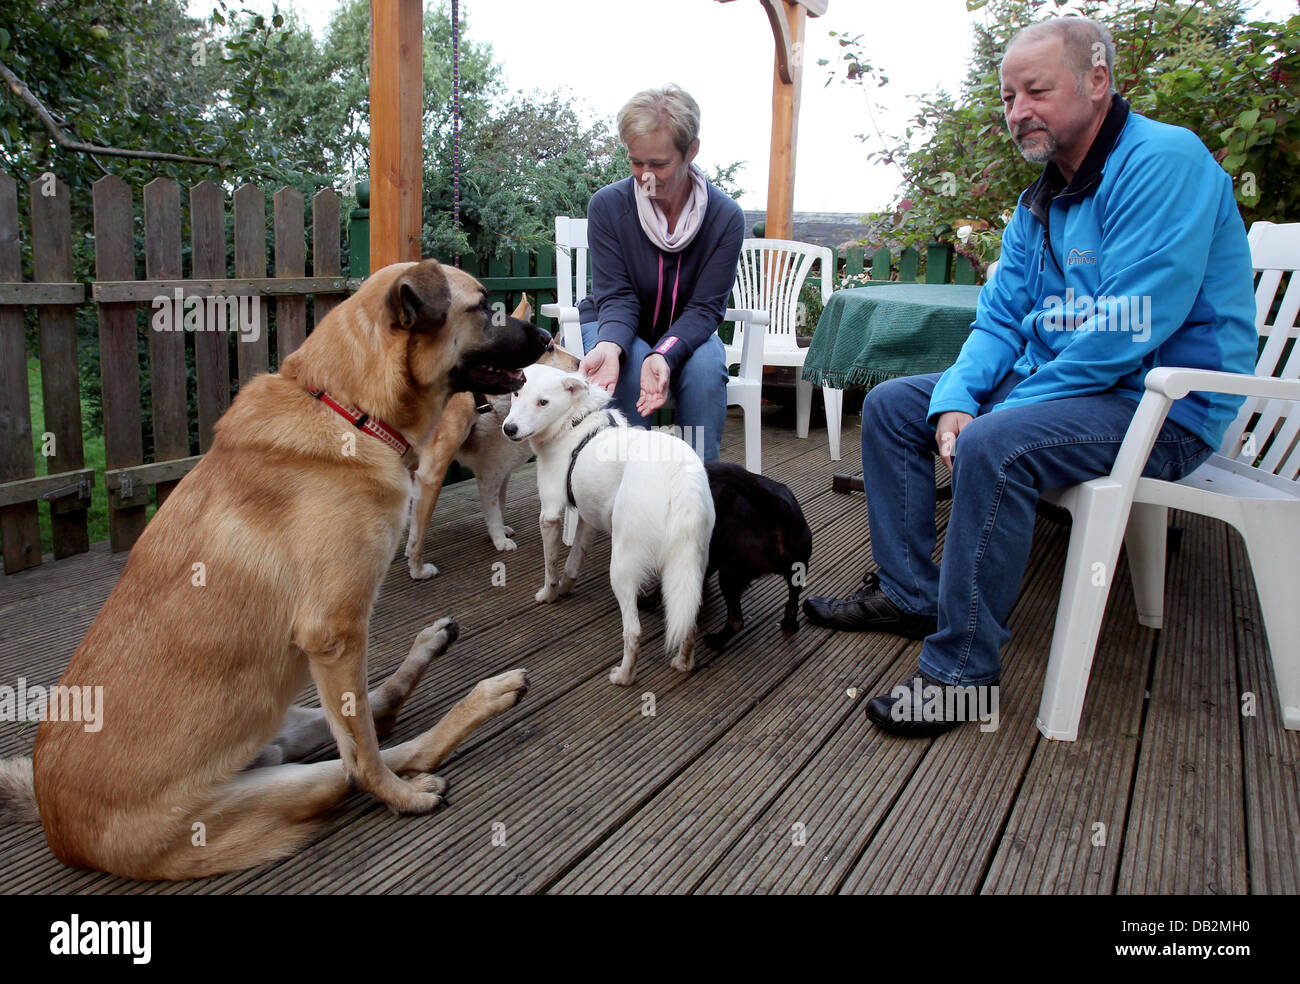 Christel and Manfred Klein, owners of the pet sanctuary, sit on the terrace with their dogs in Letschow, Germany, - Stock Image